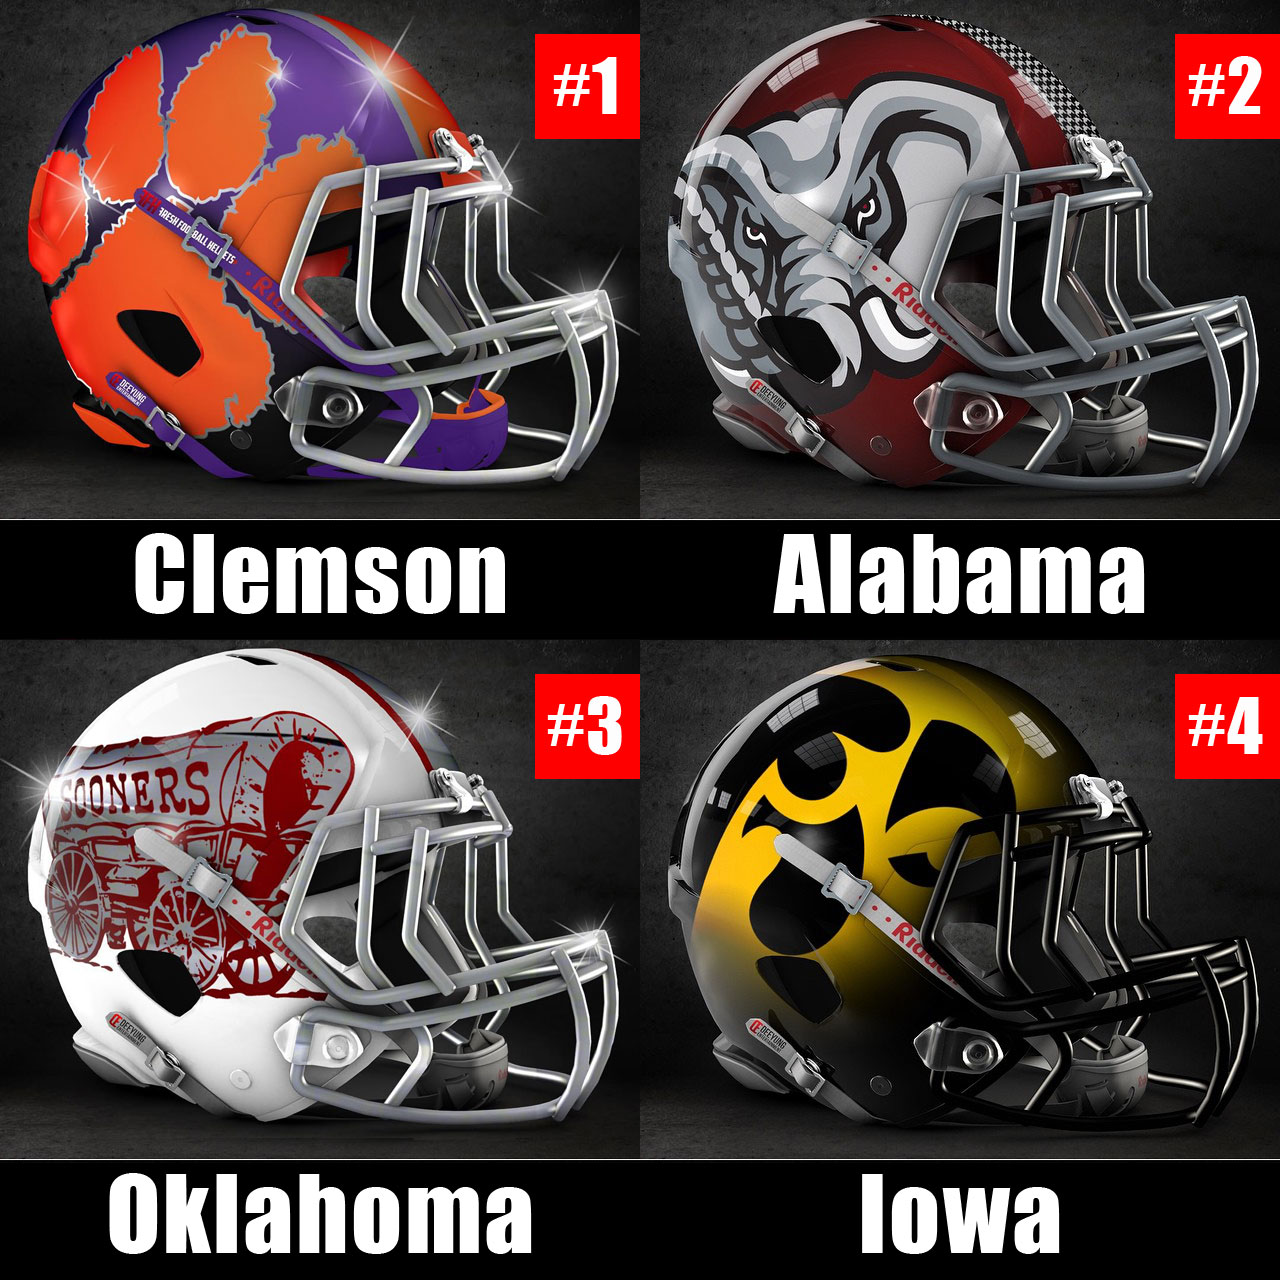 College Football Playoff Top Four with Clemson, Alabama, Oklahoma, Iowa